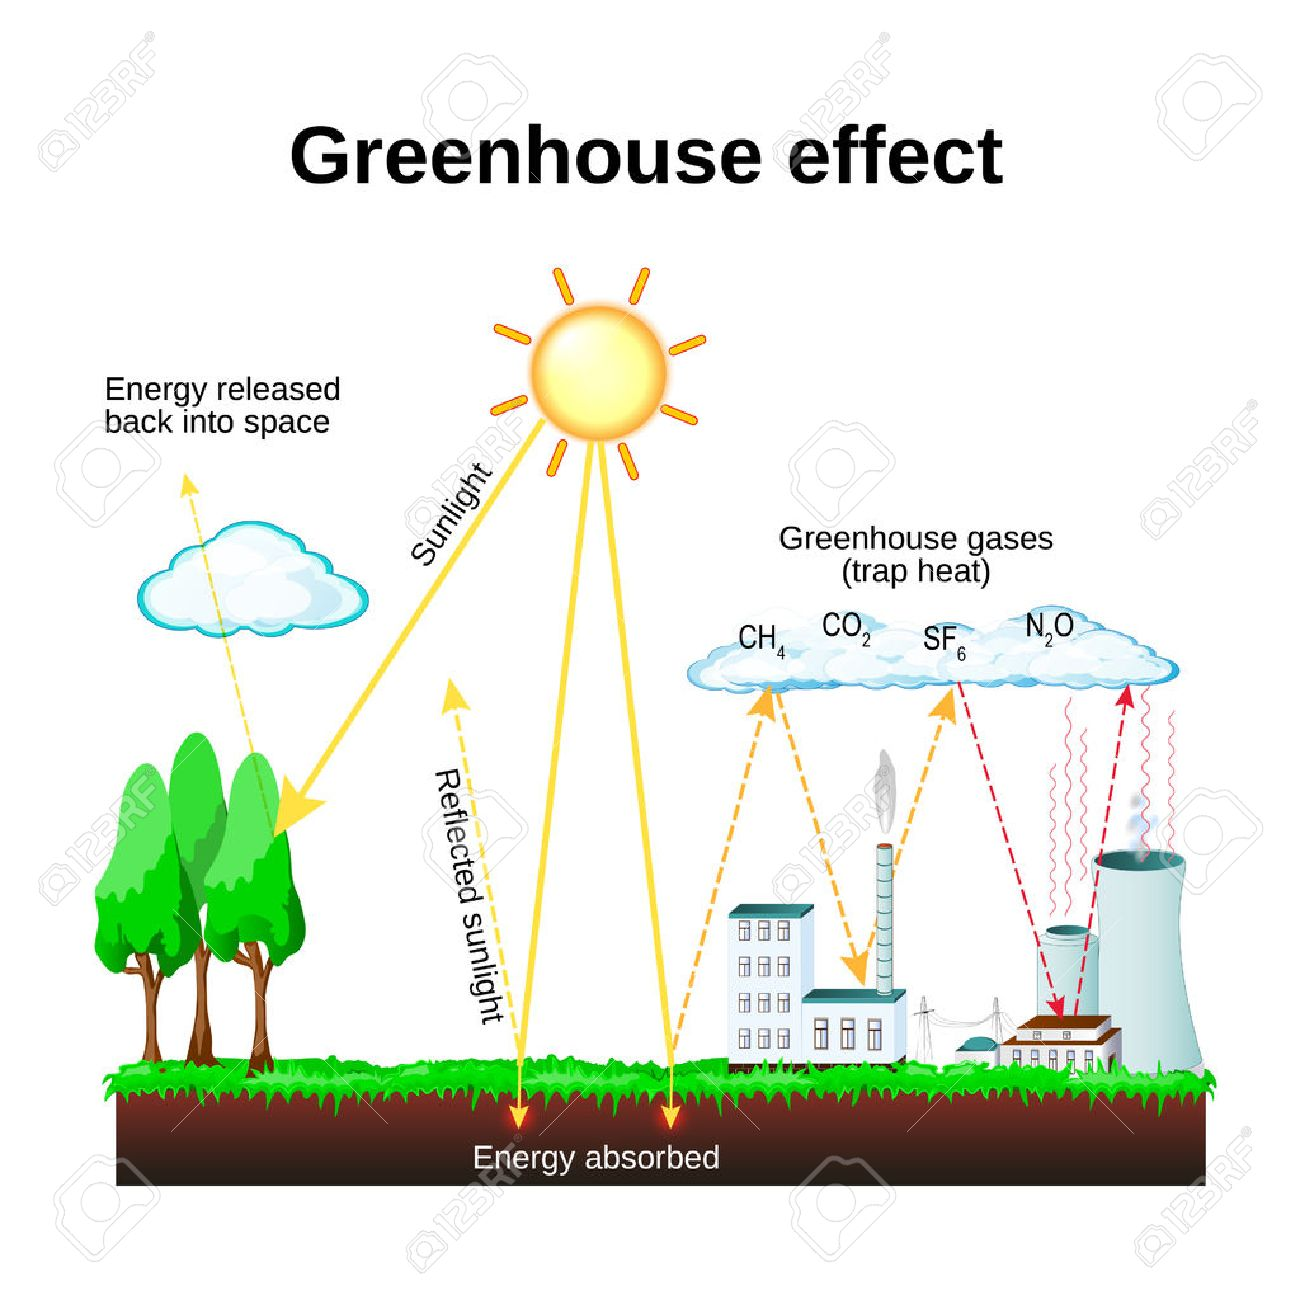 Greenhouse effect diagram showing how the greenhouse effect greenhouse effect diagram showing how the greenhouse effect works global warming stock vector ccuart Gallery